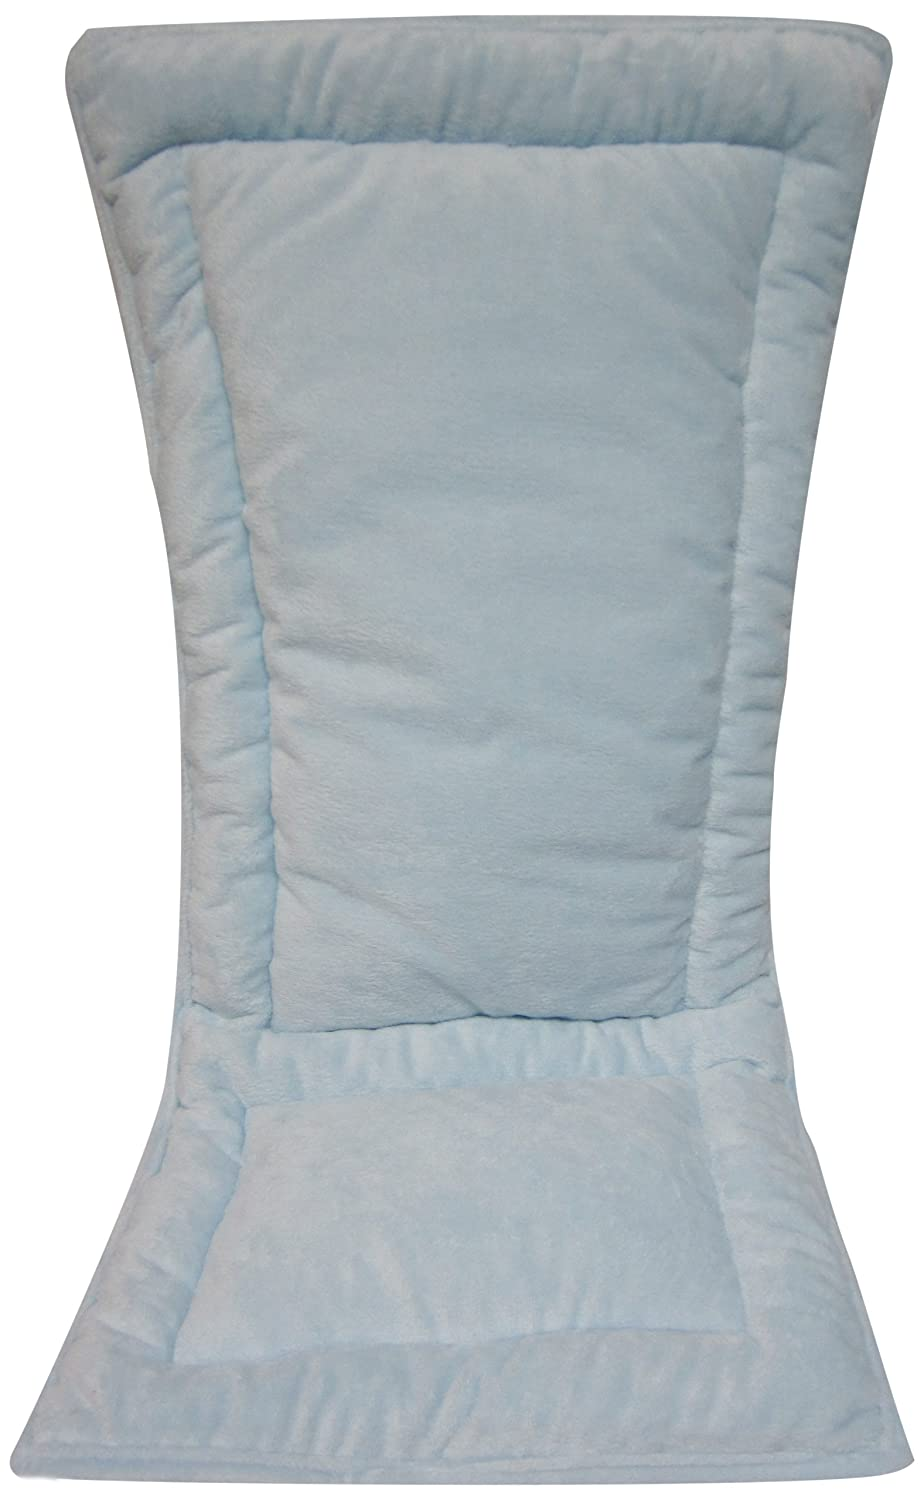 Baby Doll Bedding High Chair Cover, Blue